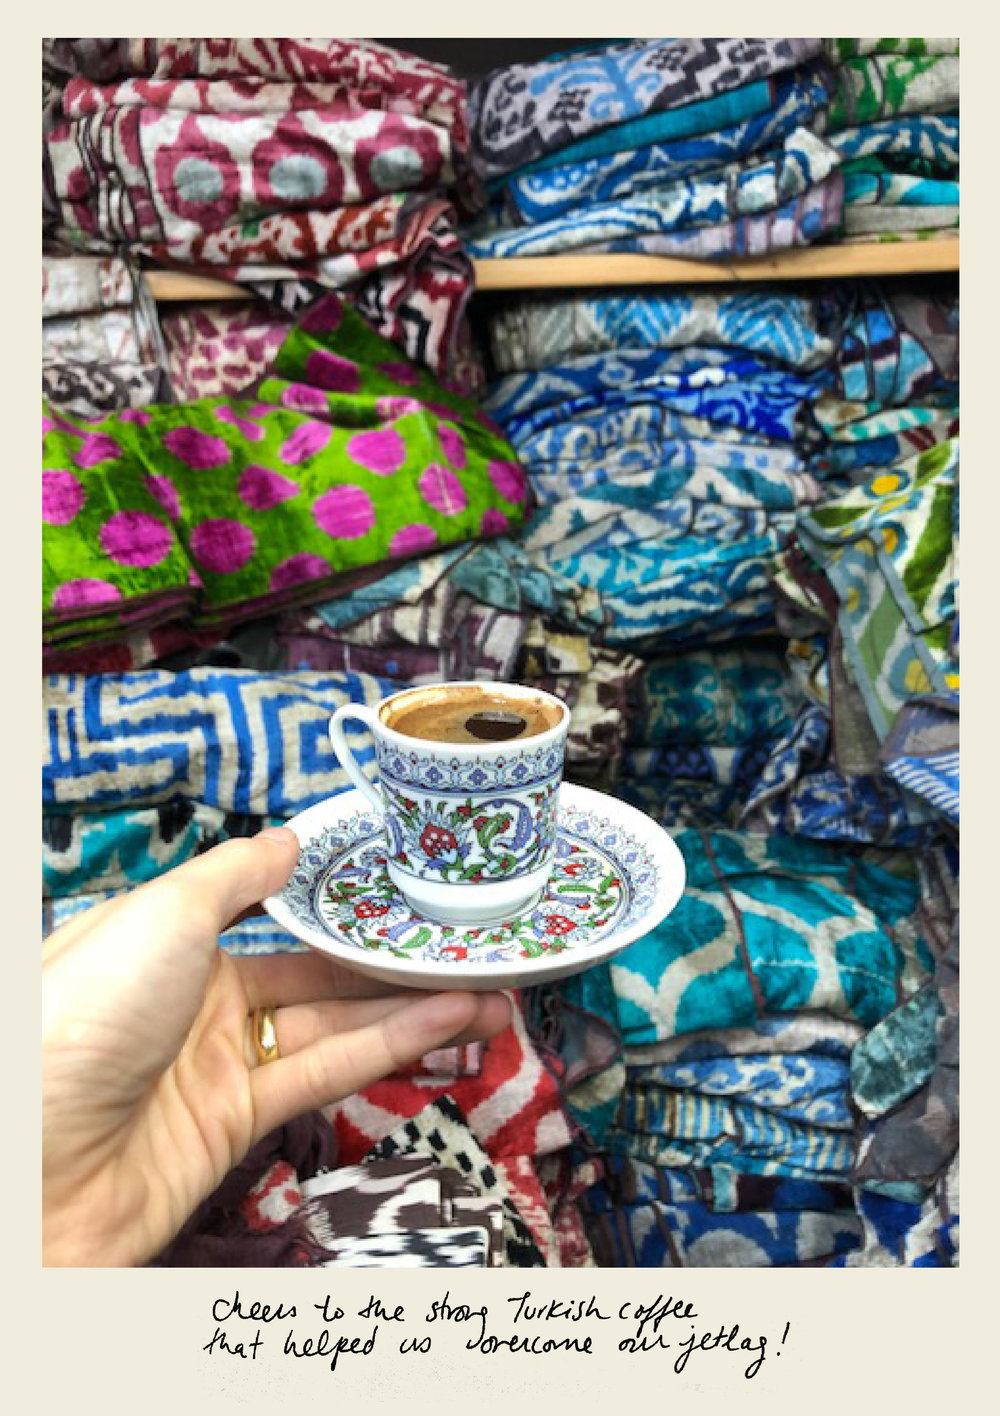 velvet, silk velvet, velvet shoes, turkey, turkish coffee, istanbul